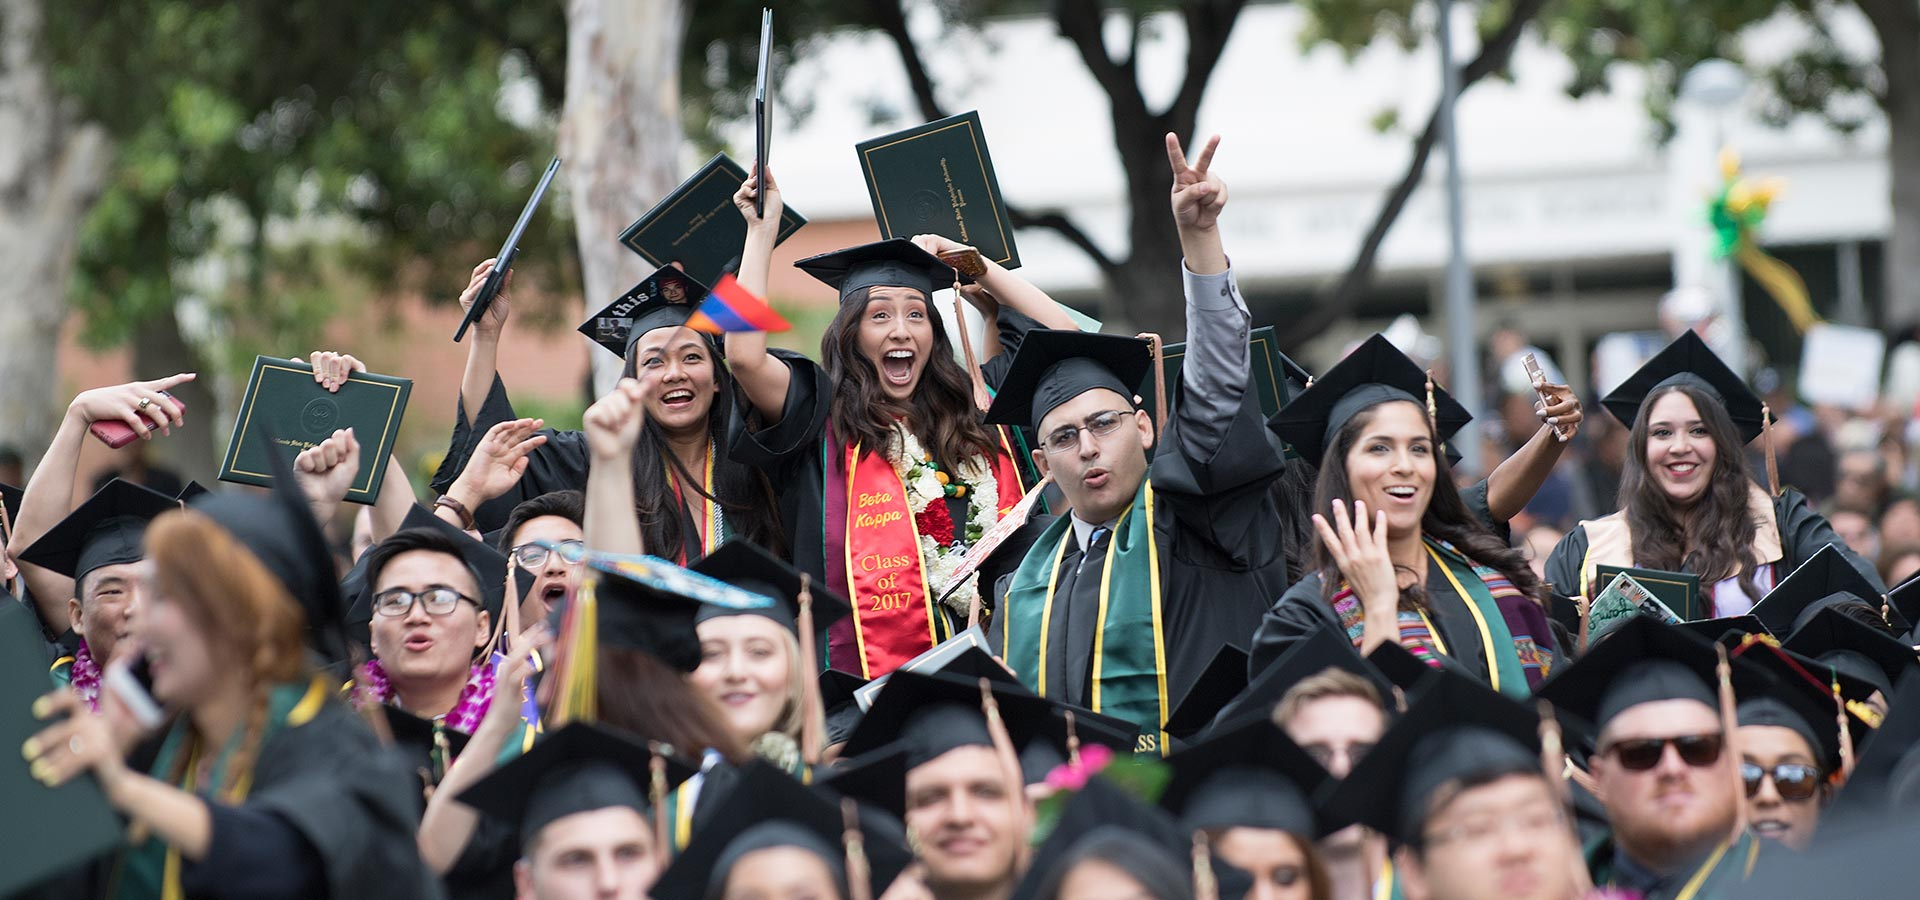 Students celebrating during a commencement ceremony at CPP